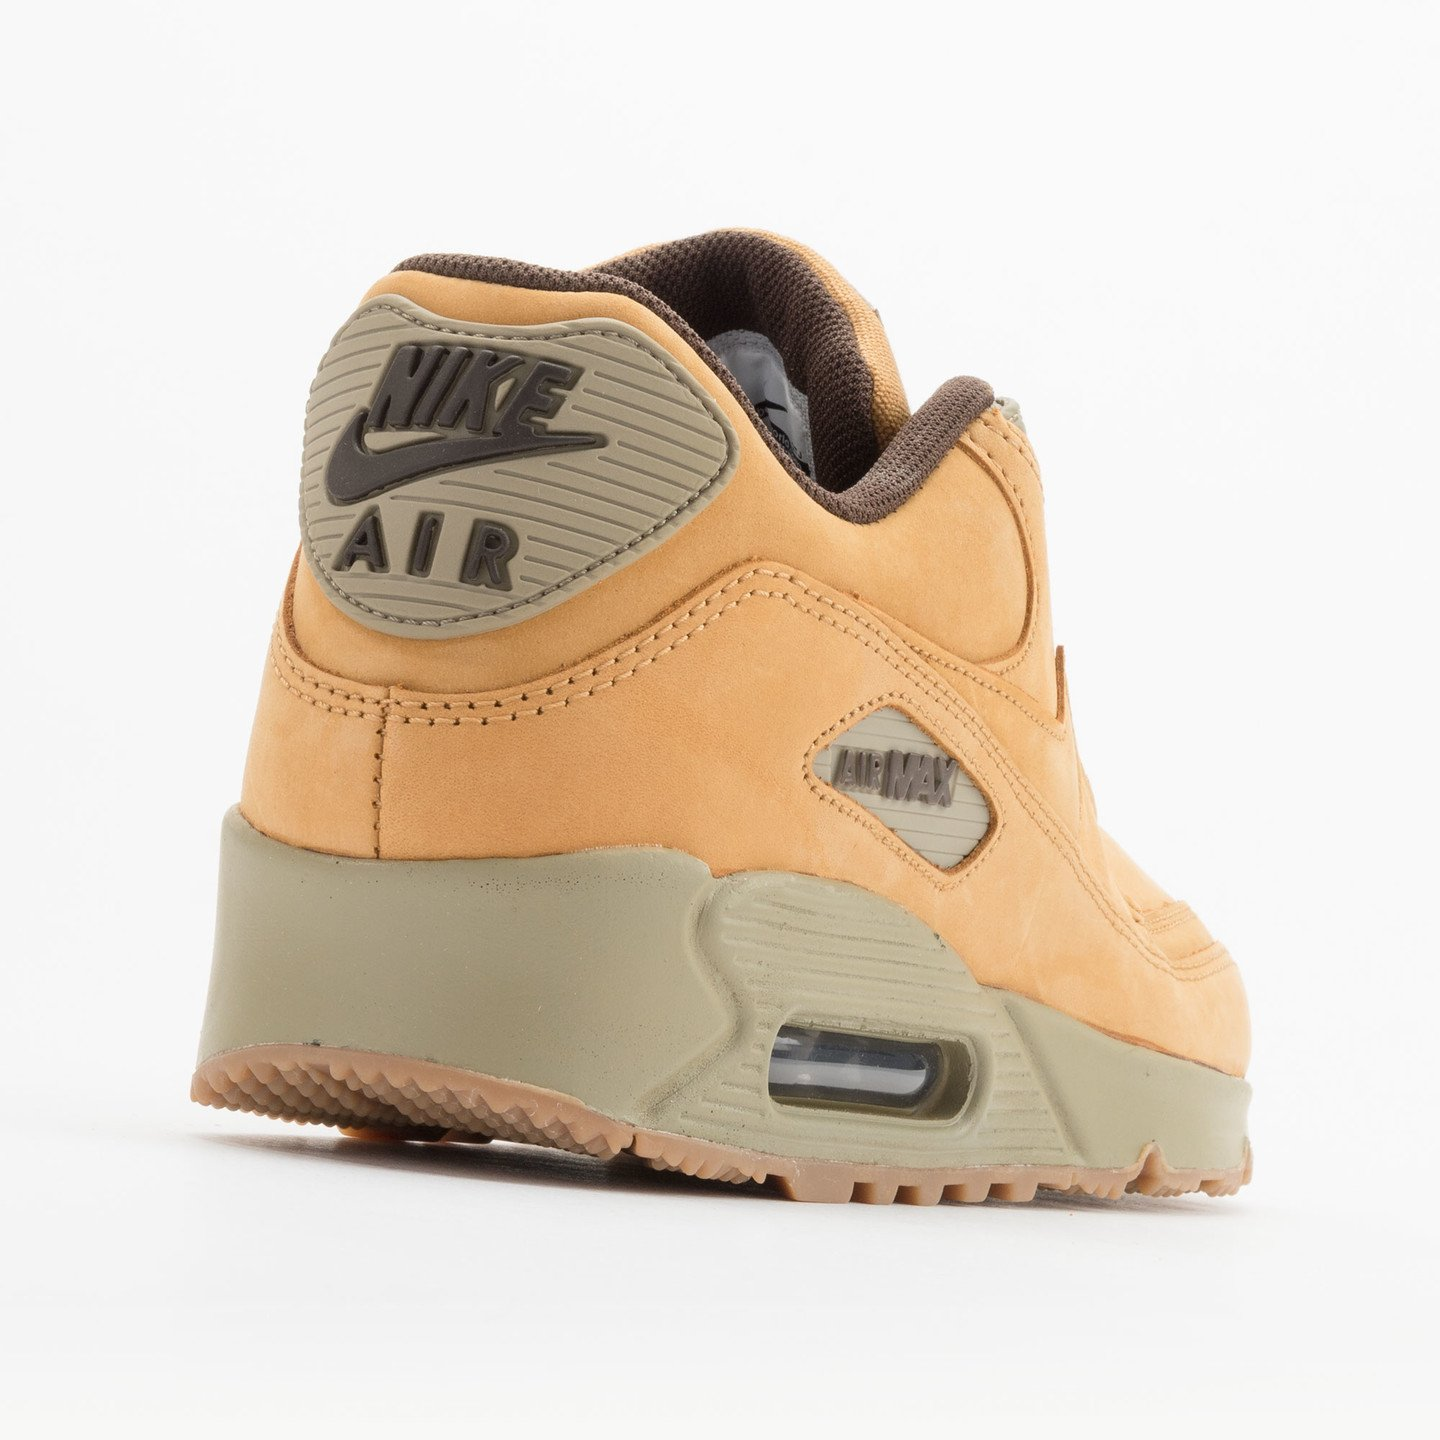 Nike Air Max 90 Winter Premium Bronze / Baroque Brown 683282-700-40.5